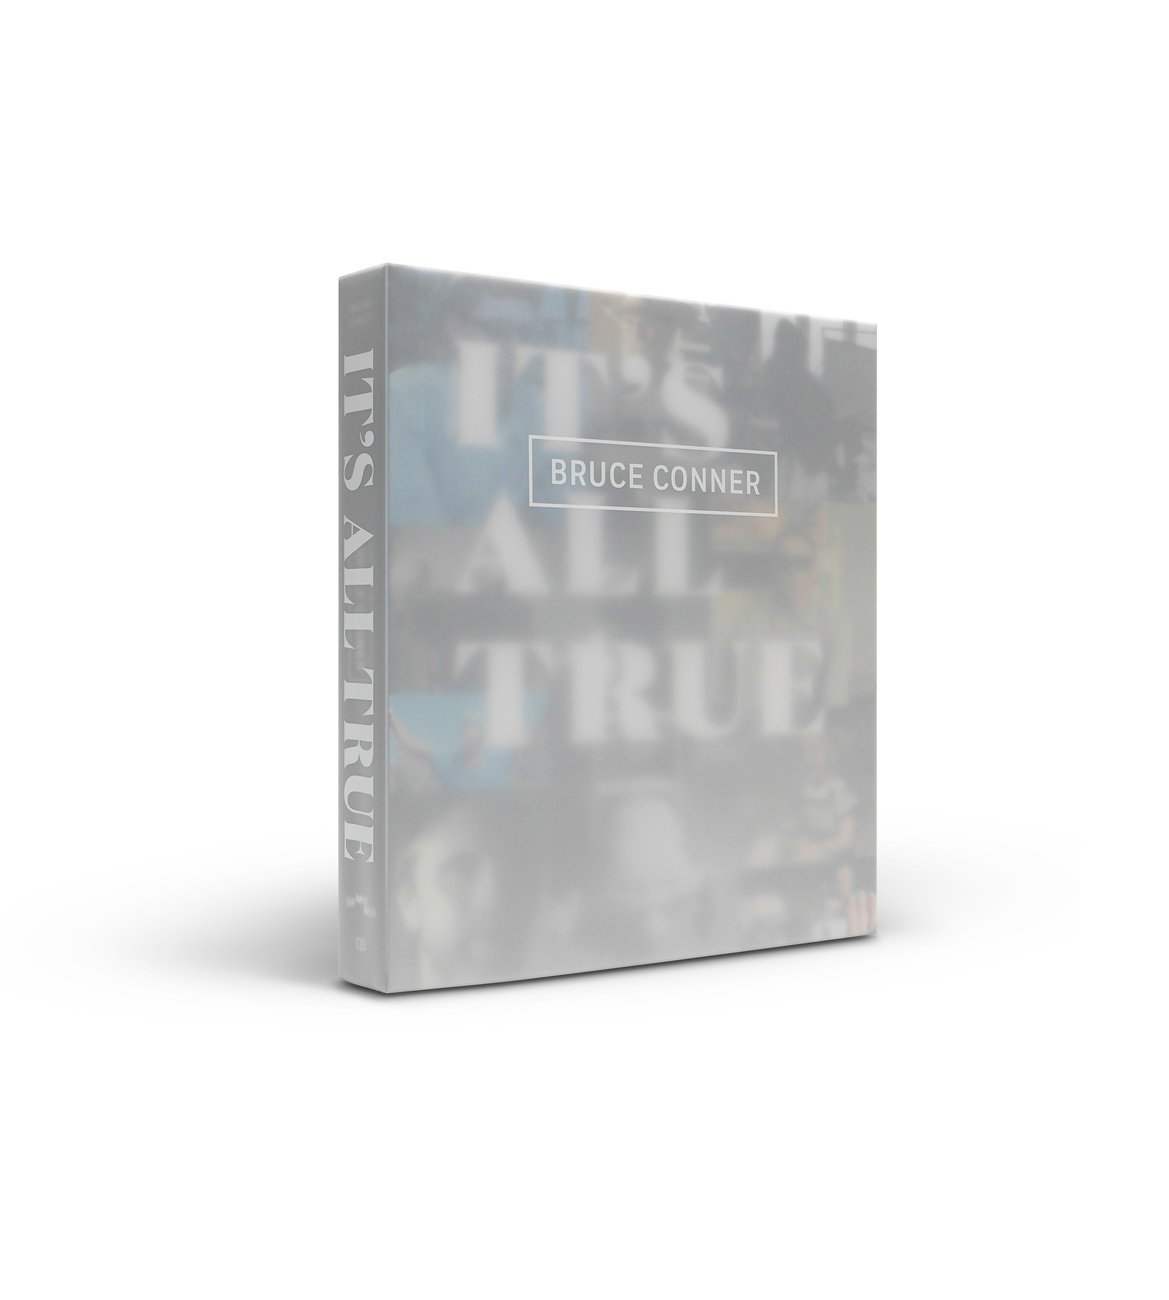 Image of Bruce Conner: It's All True publication